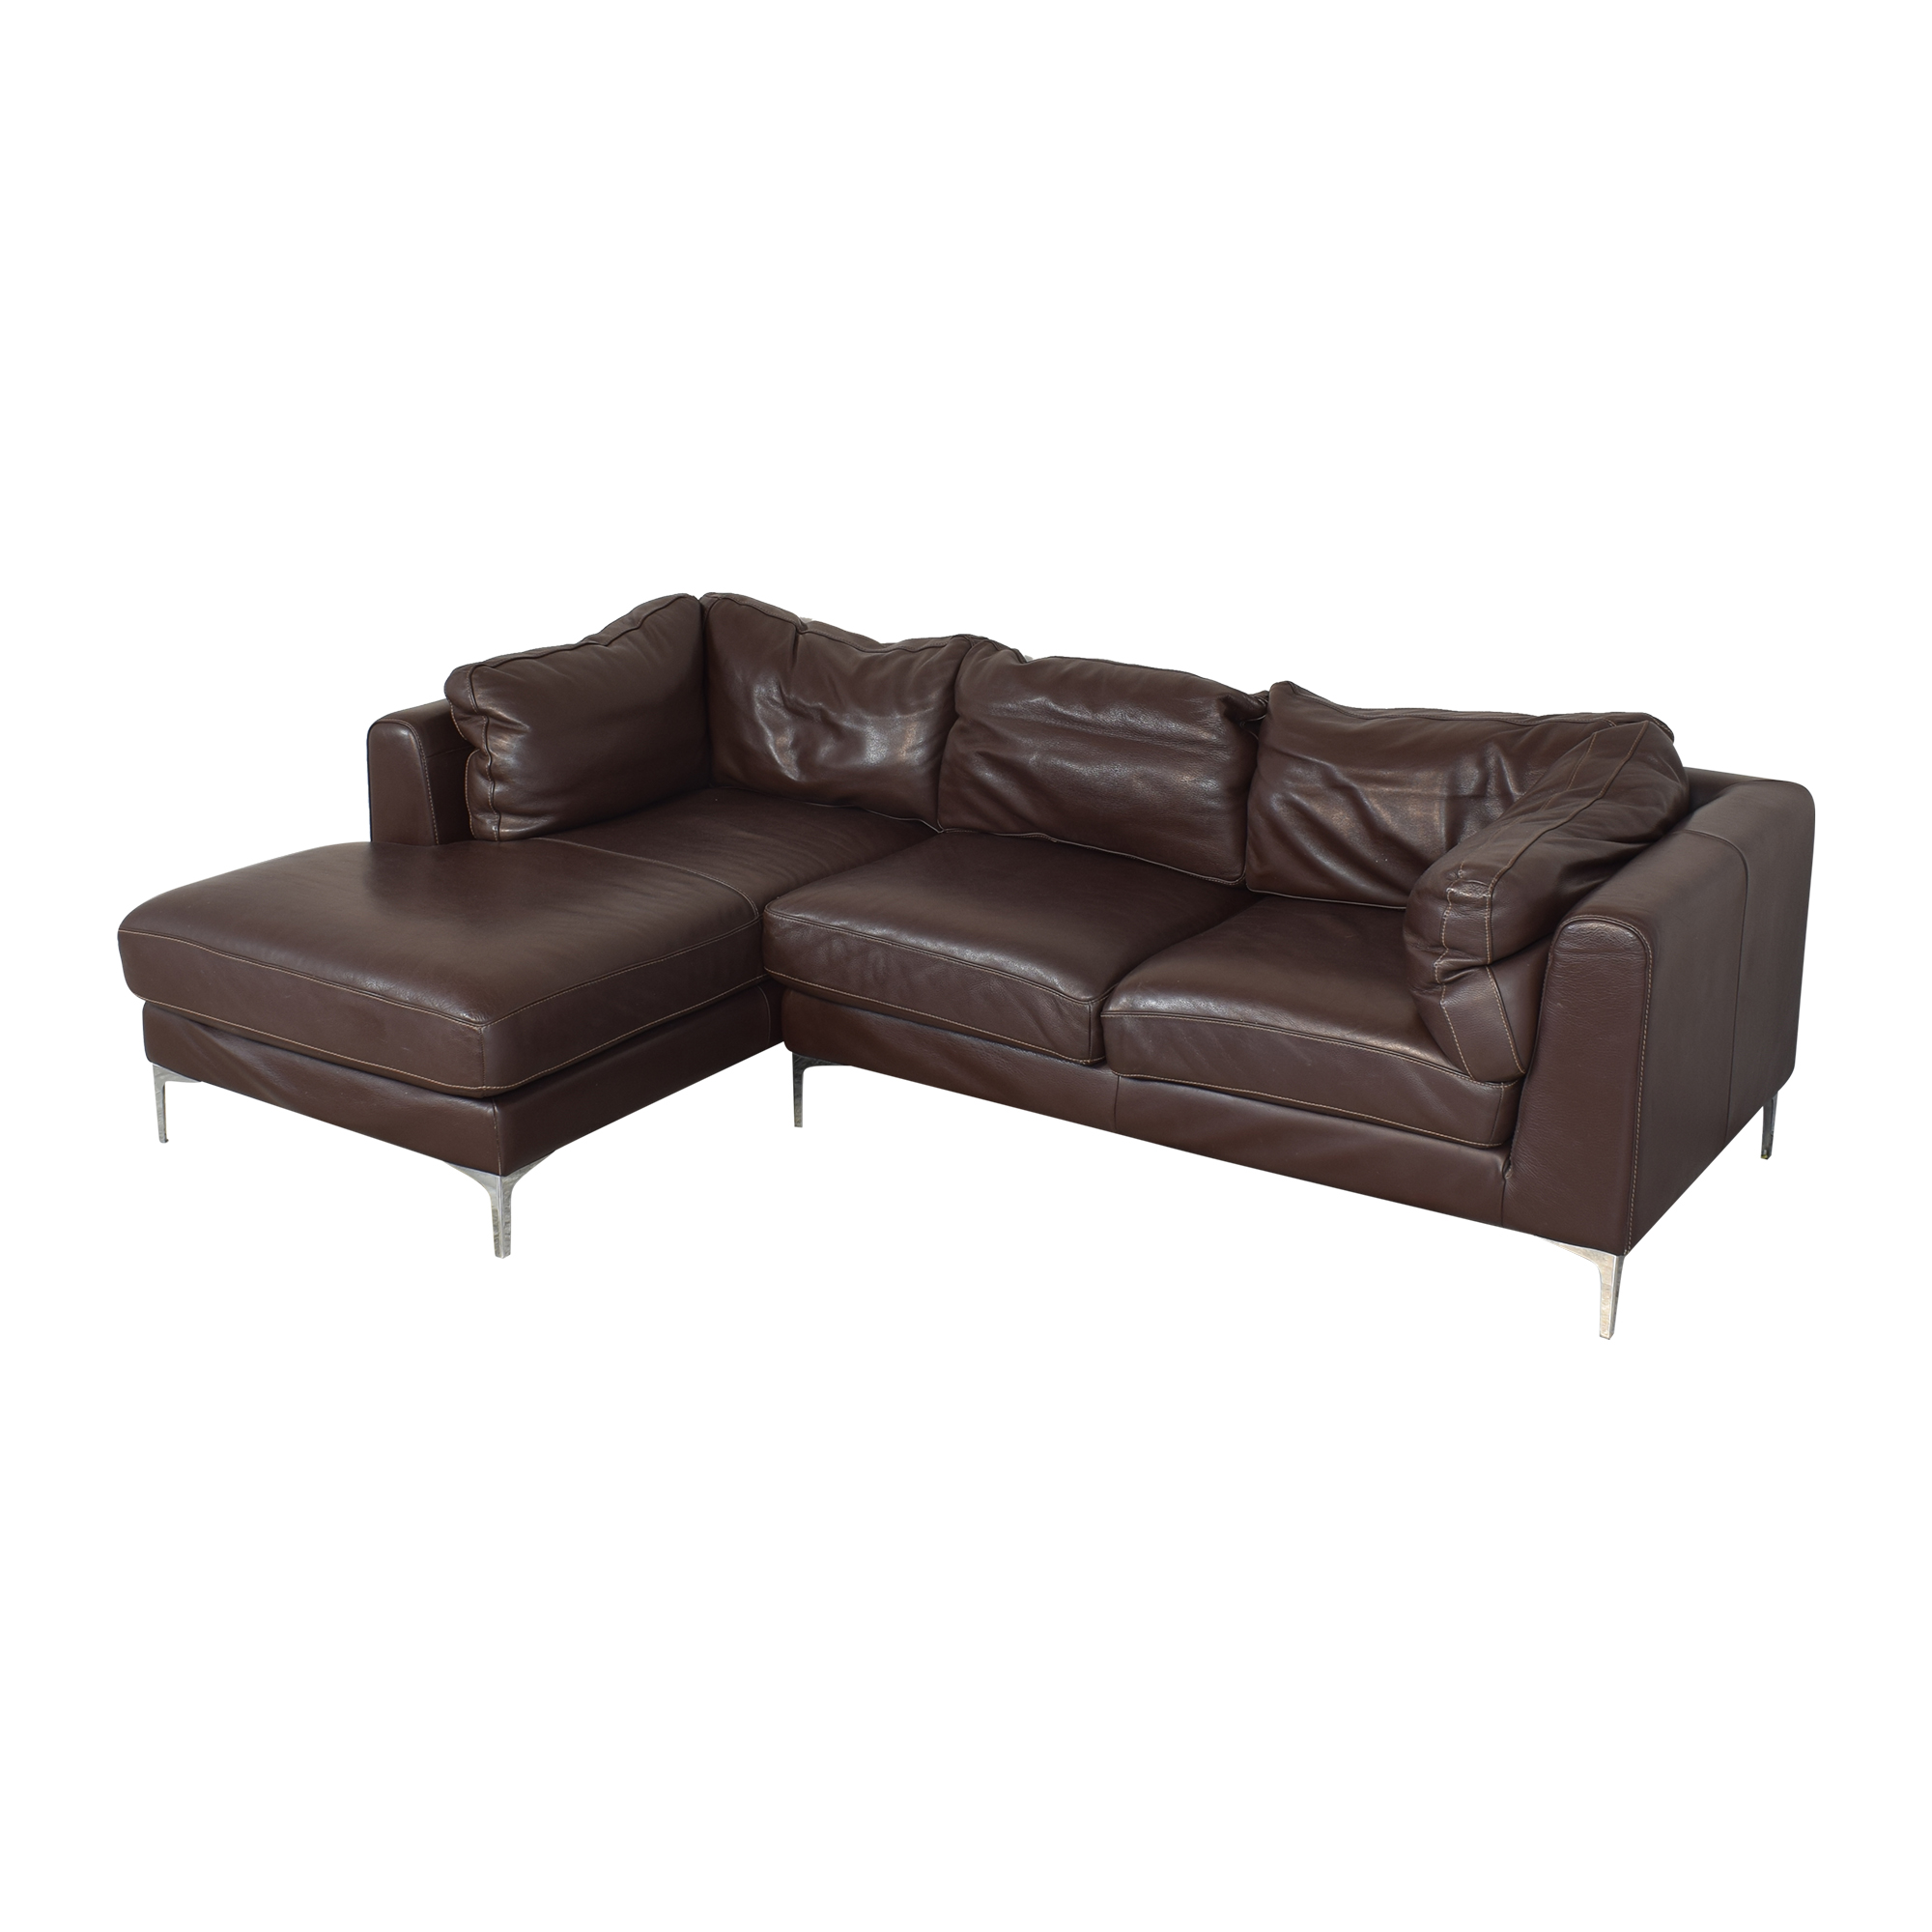 Design Within Reach Nicoletti Sectional Sofa with Chaise / Sofas